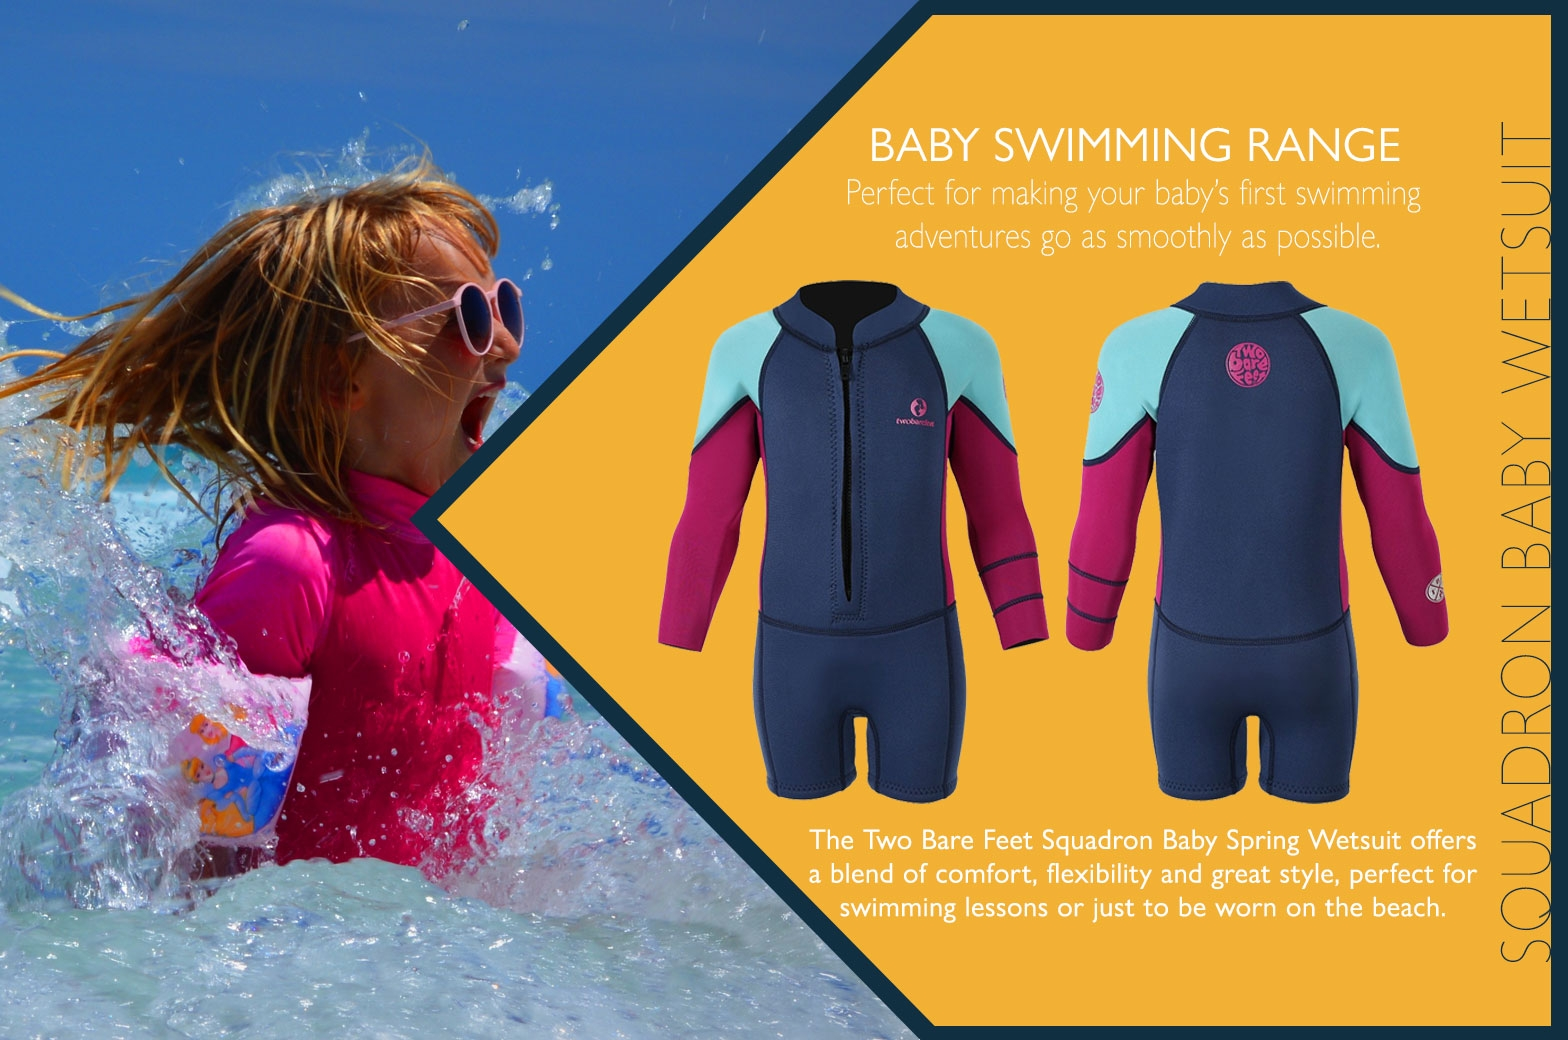 Squadron baby wetsuit features